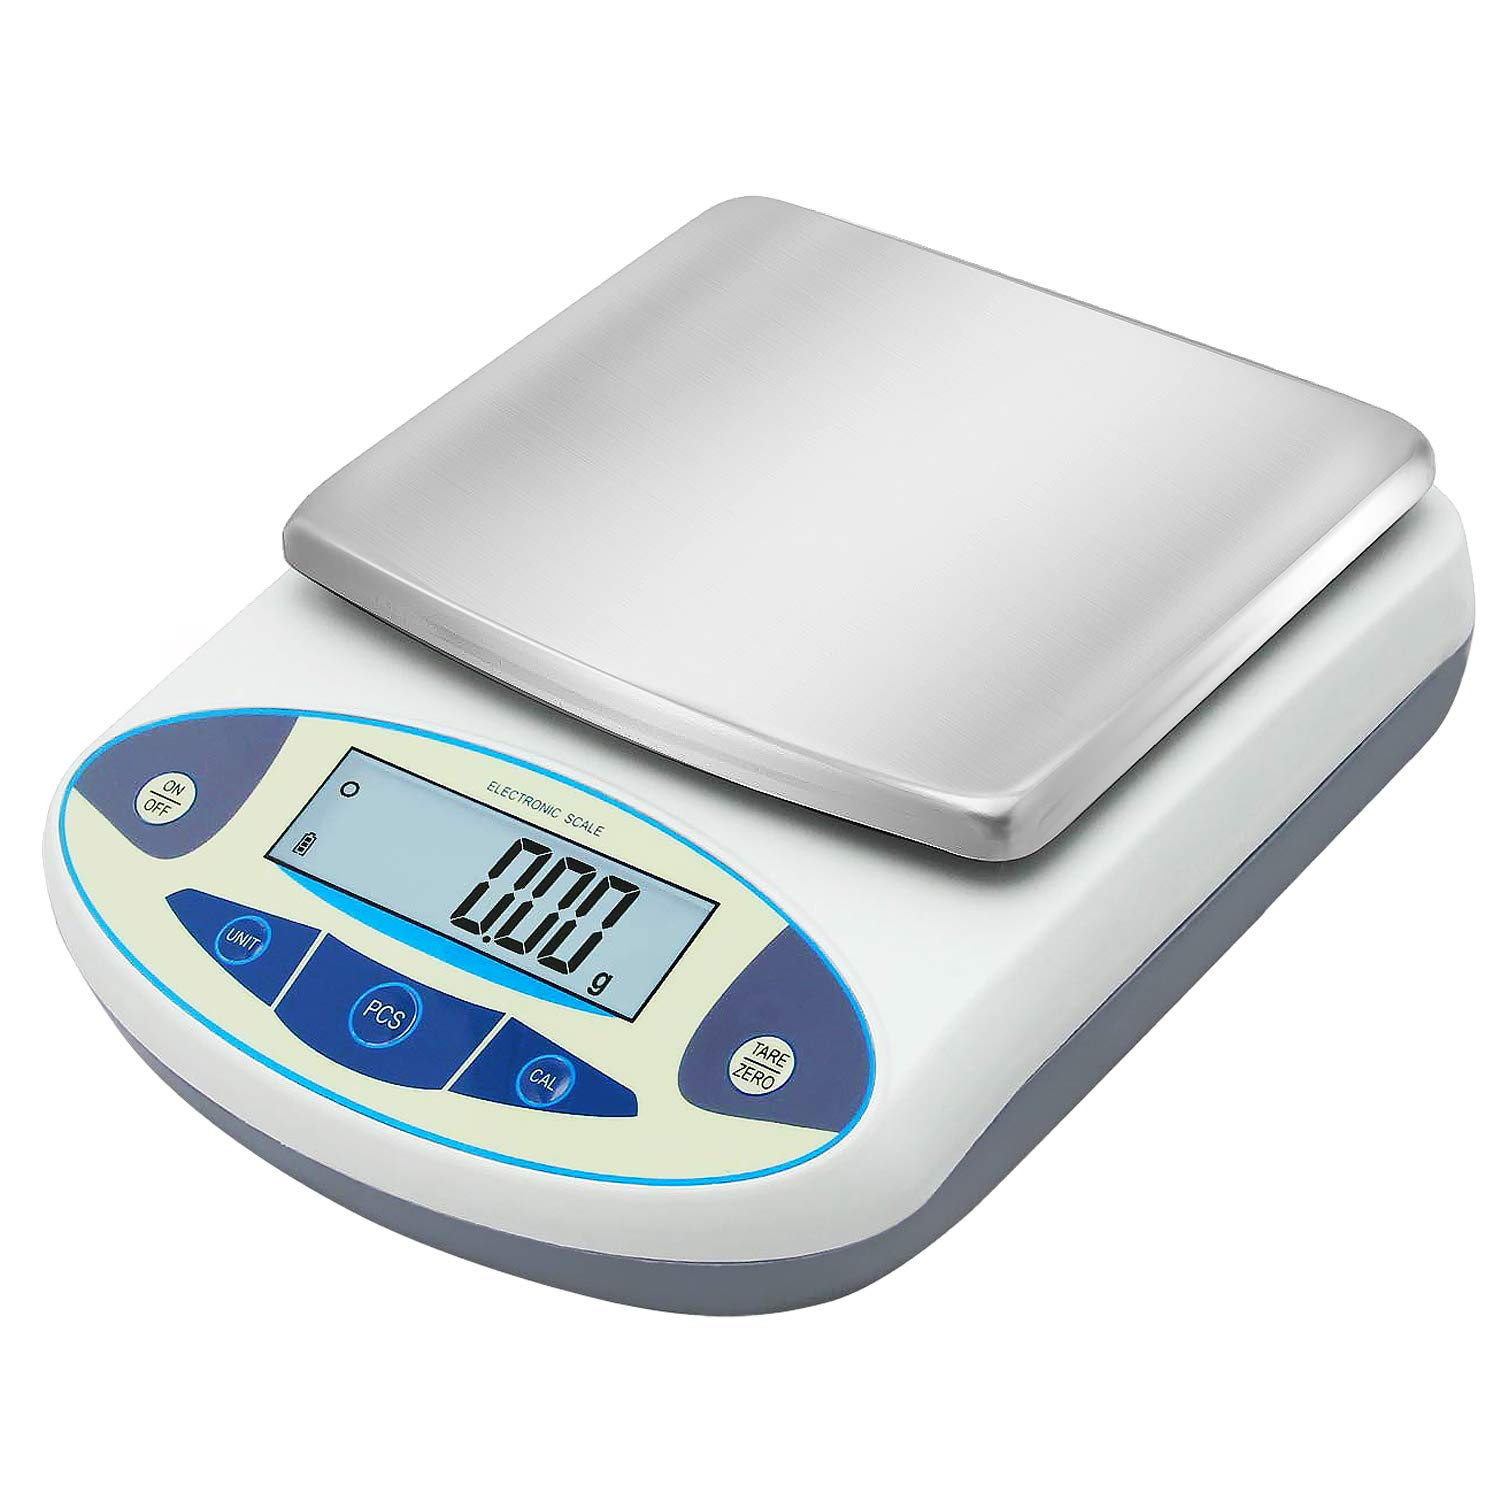 Bonvoisin Lab Scale 5000gx0.01g Analyt Electronic High Precision Max 86% OFFicial shop OFF